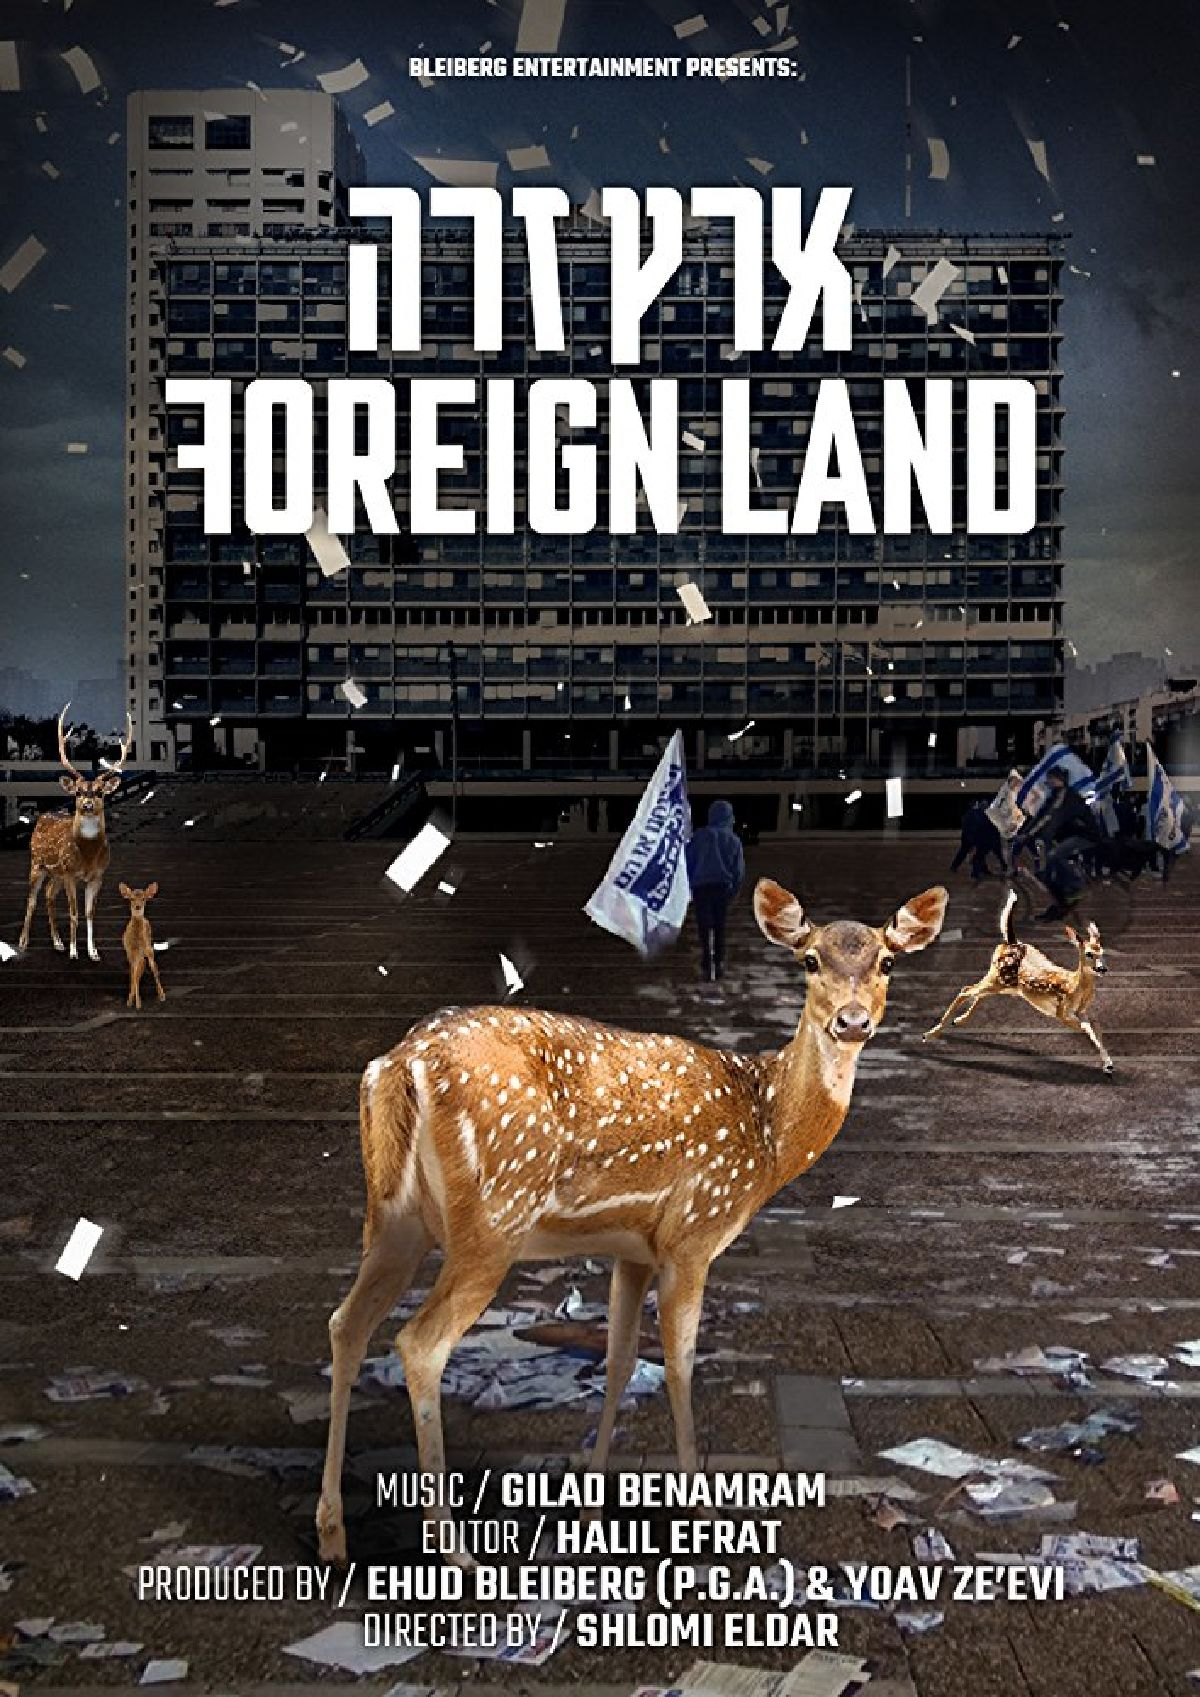 'Foreign Land' movie poster